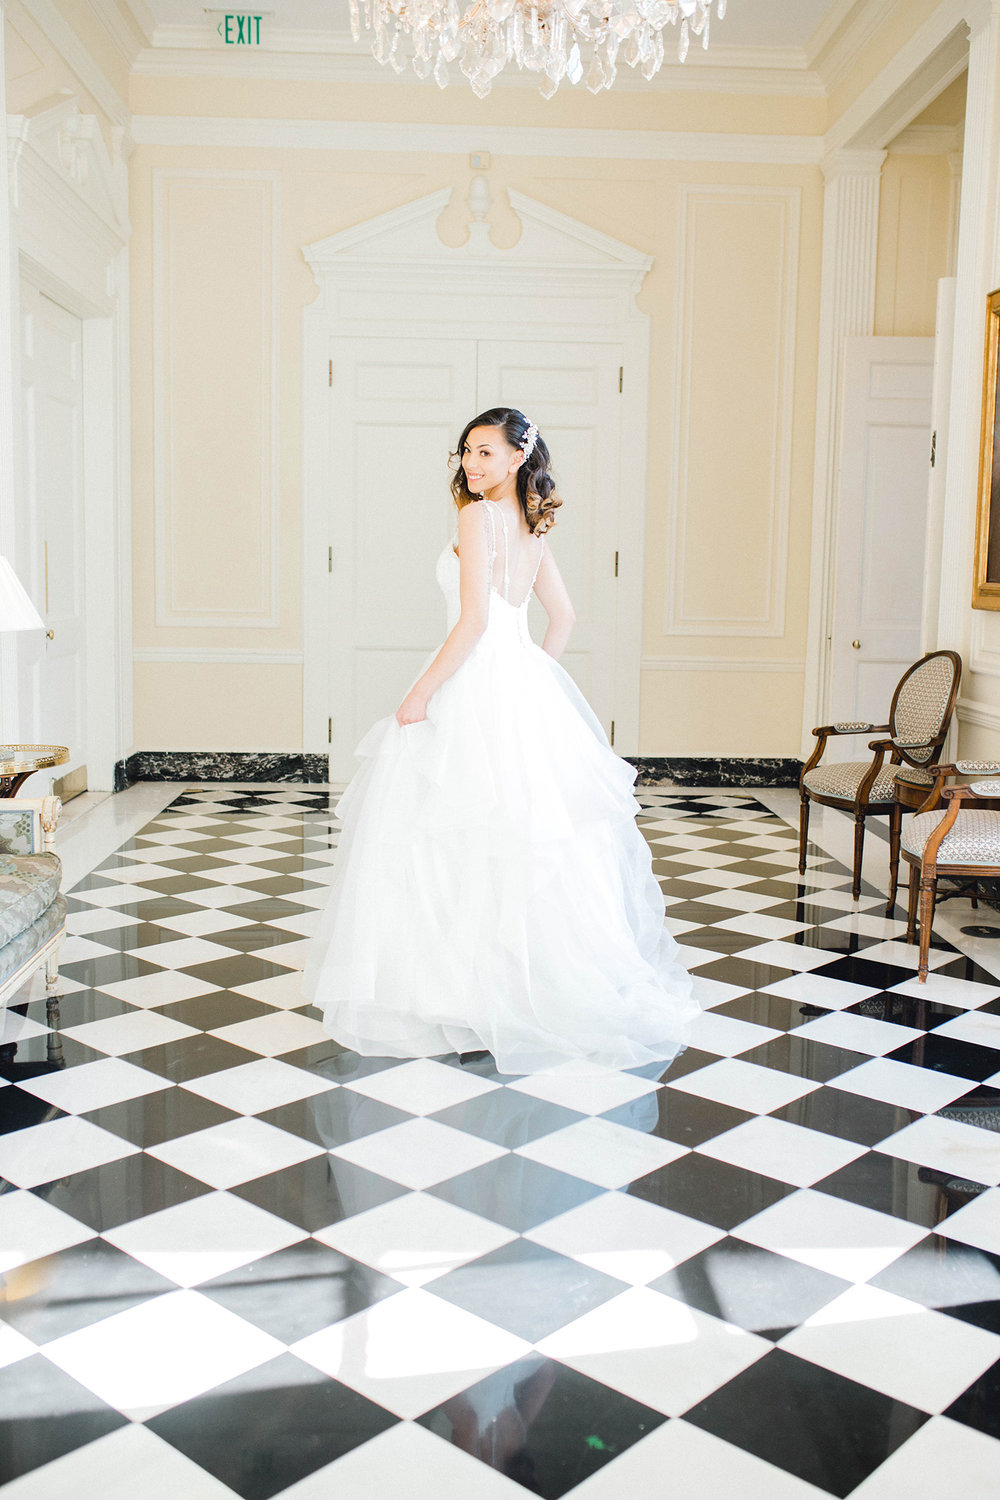 A bride on a checkerboard floor at the Duke Mansion in Charlotte, NC